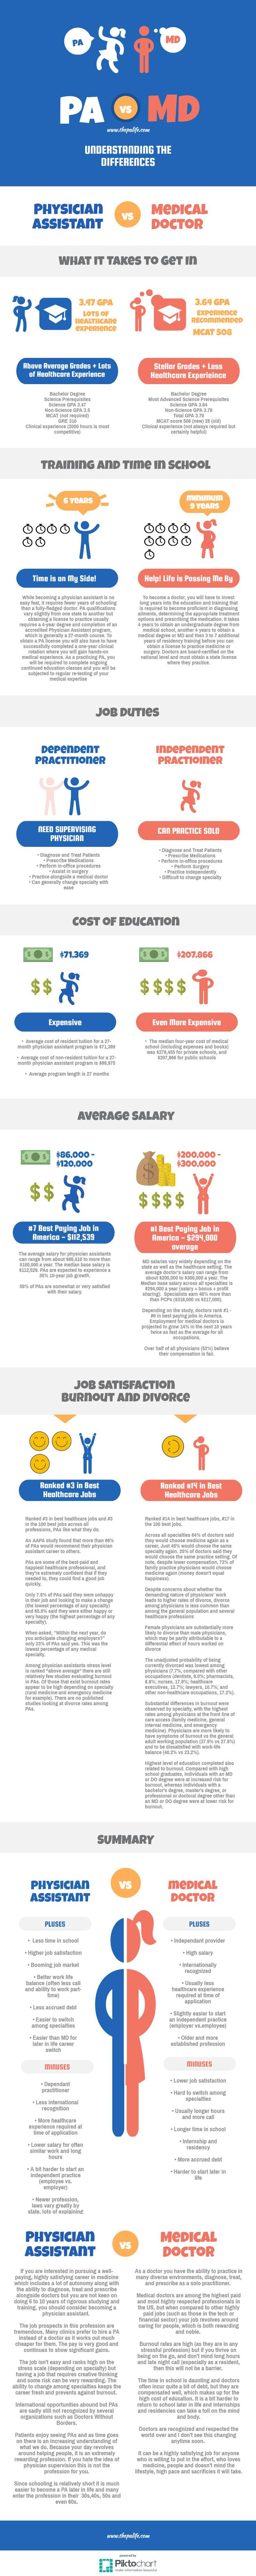 Ingographic: PA VS MD Comparison: What it takes to get in, time in school, job duties, the cost of education, average salary, job satisfaction, burnout, and divorce rates.